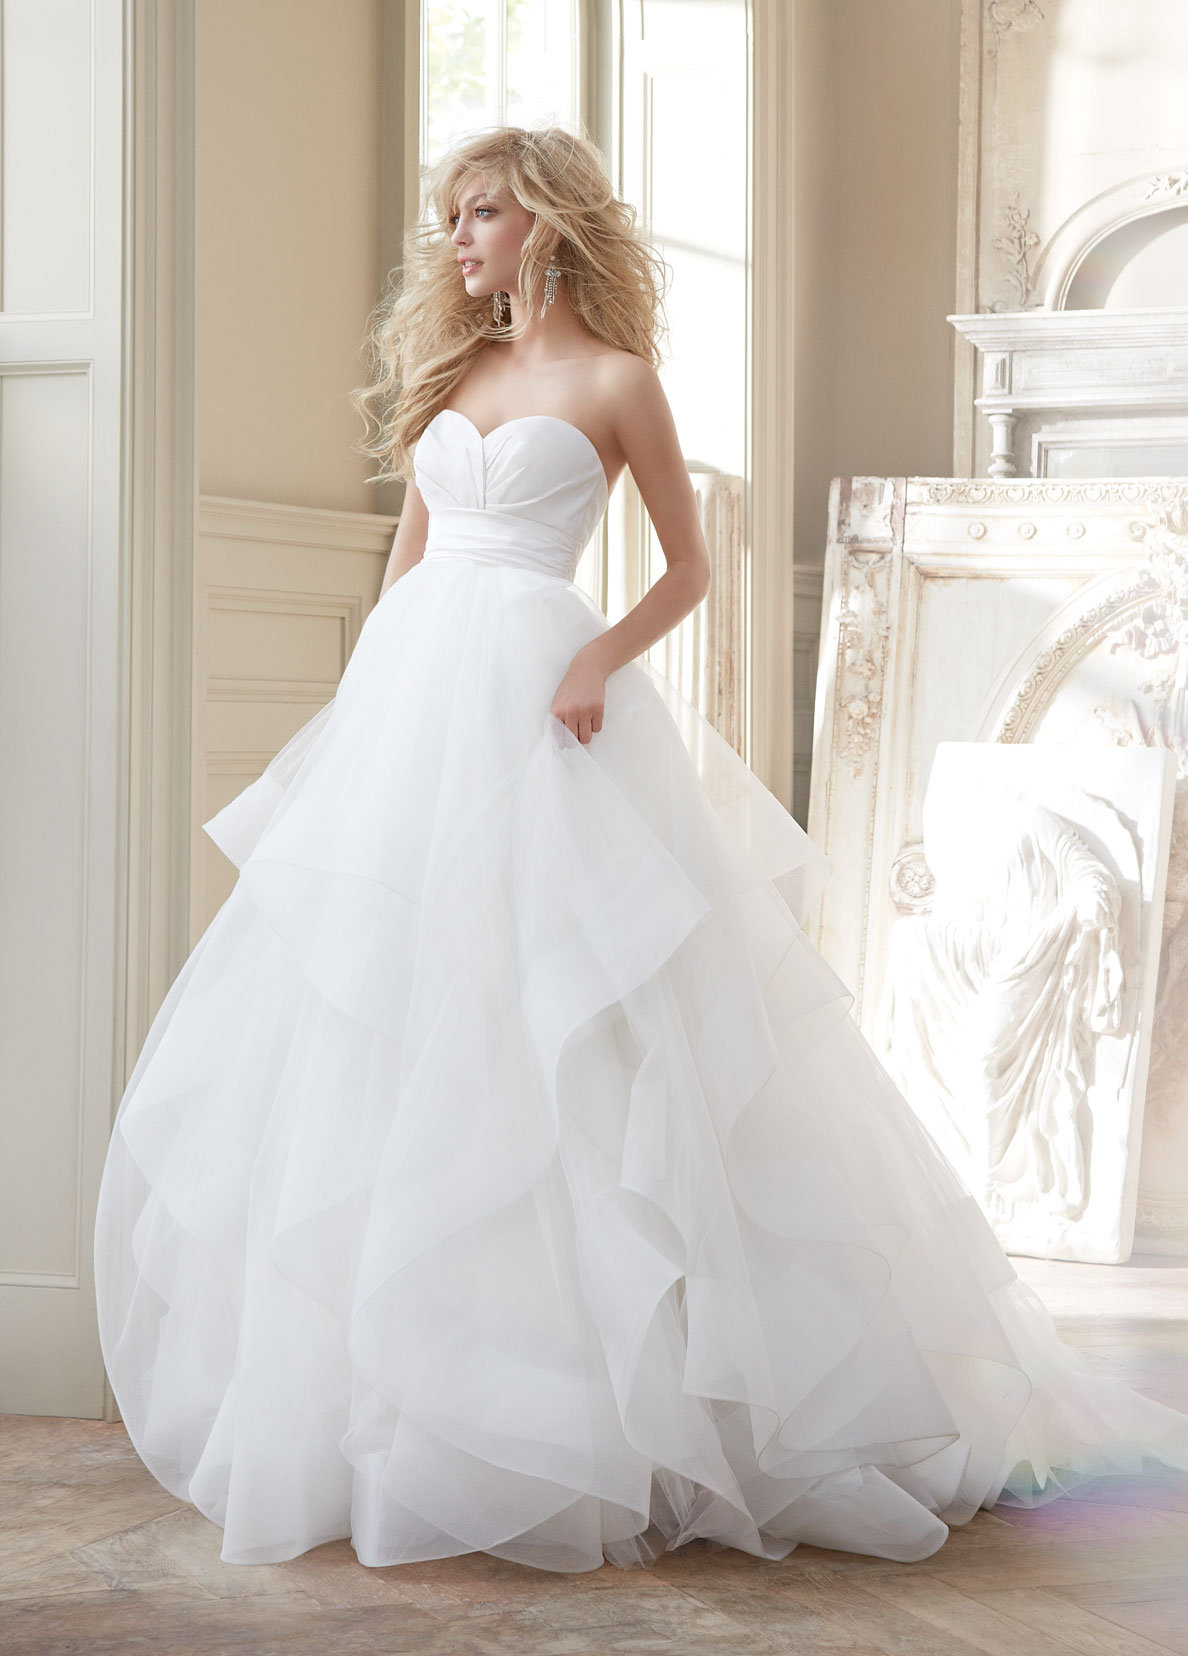 Bridal Gowns and Wedding Dresses by JLM Couture - Style 6358